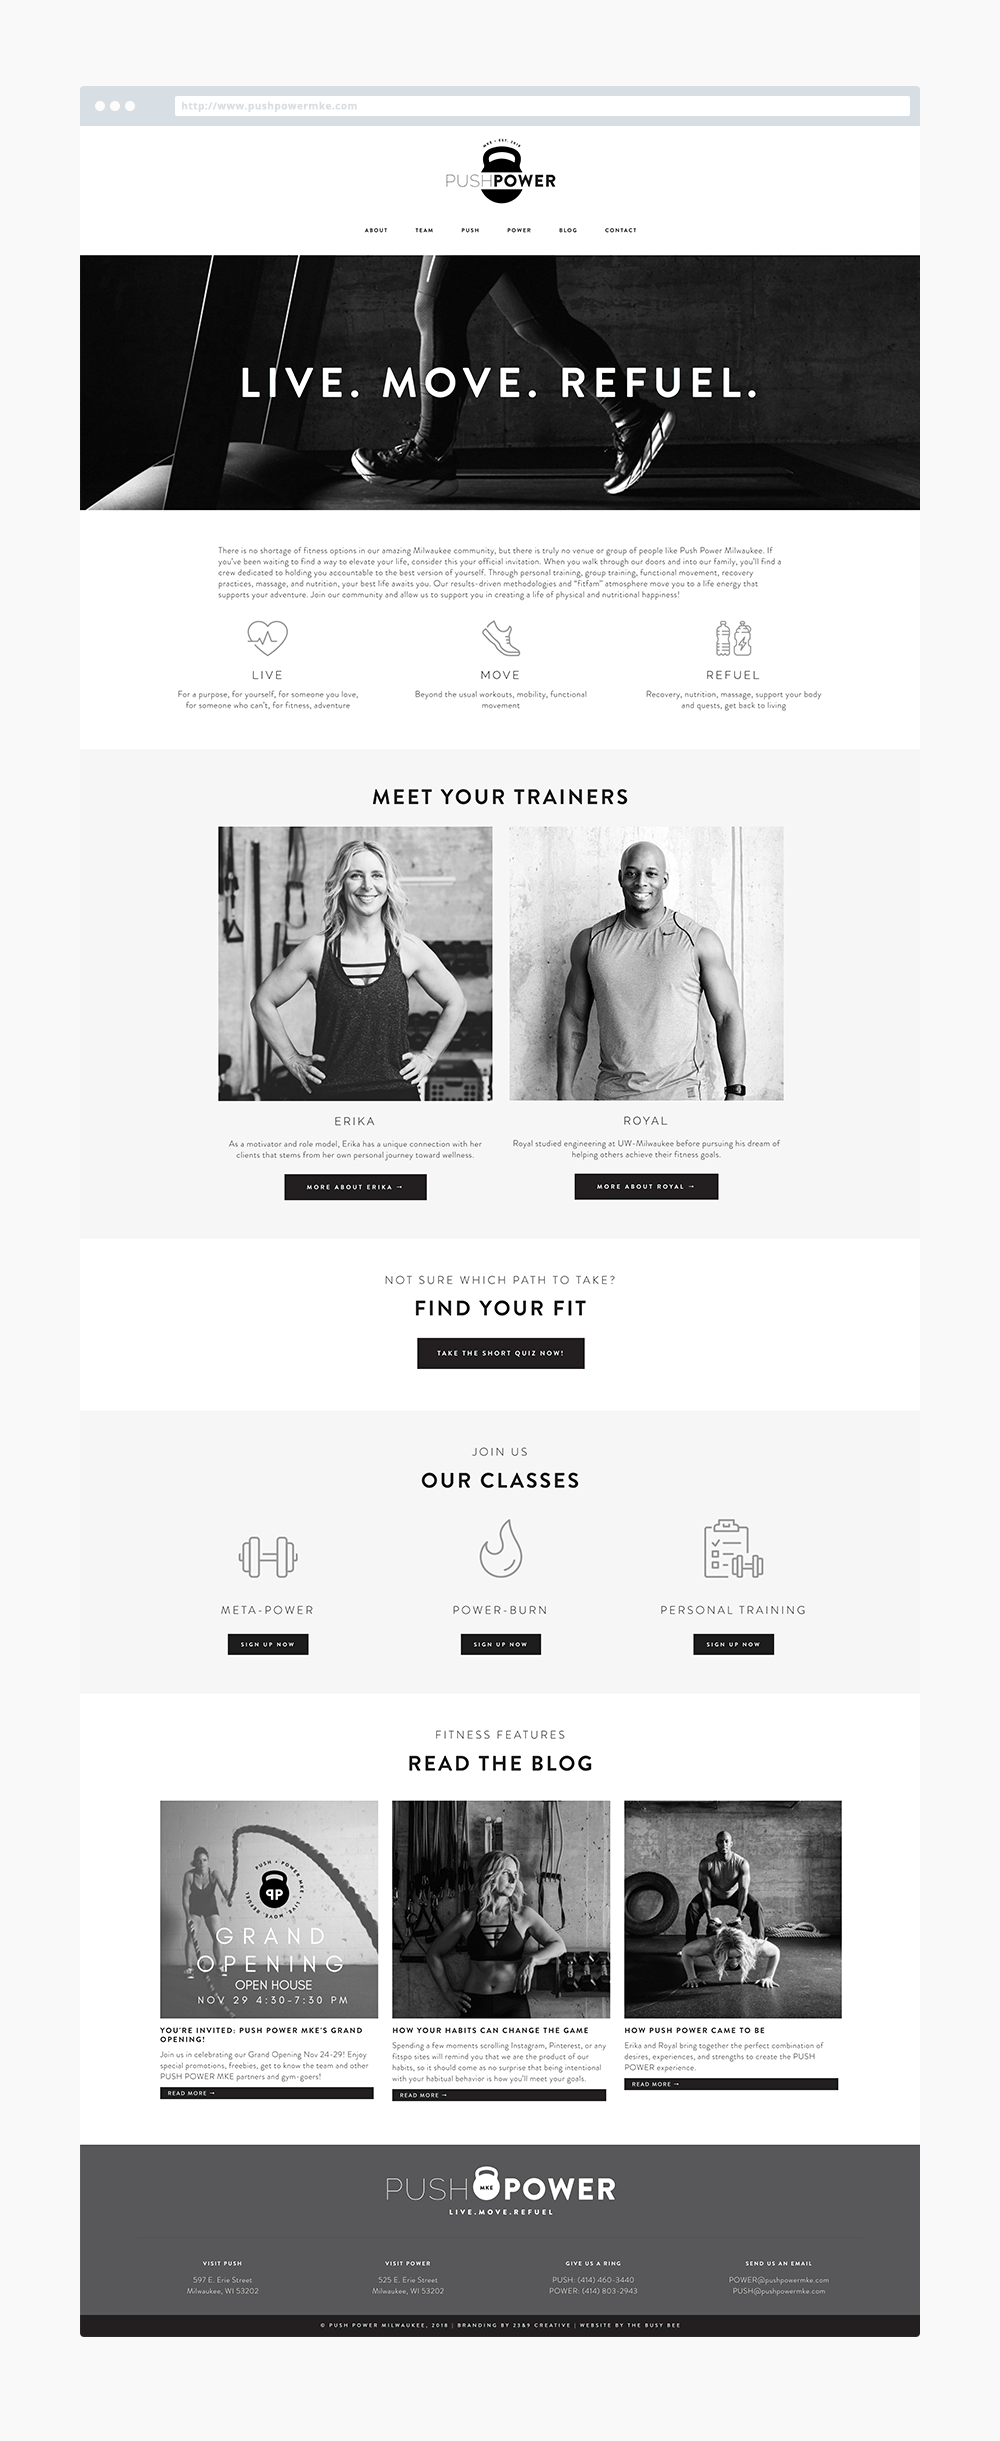 The Busy Bee Portfolio Custom Squarespace Website Push Power MKE - Custom Squarespace Website - Personal Trainer Website - Workout Website